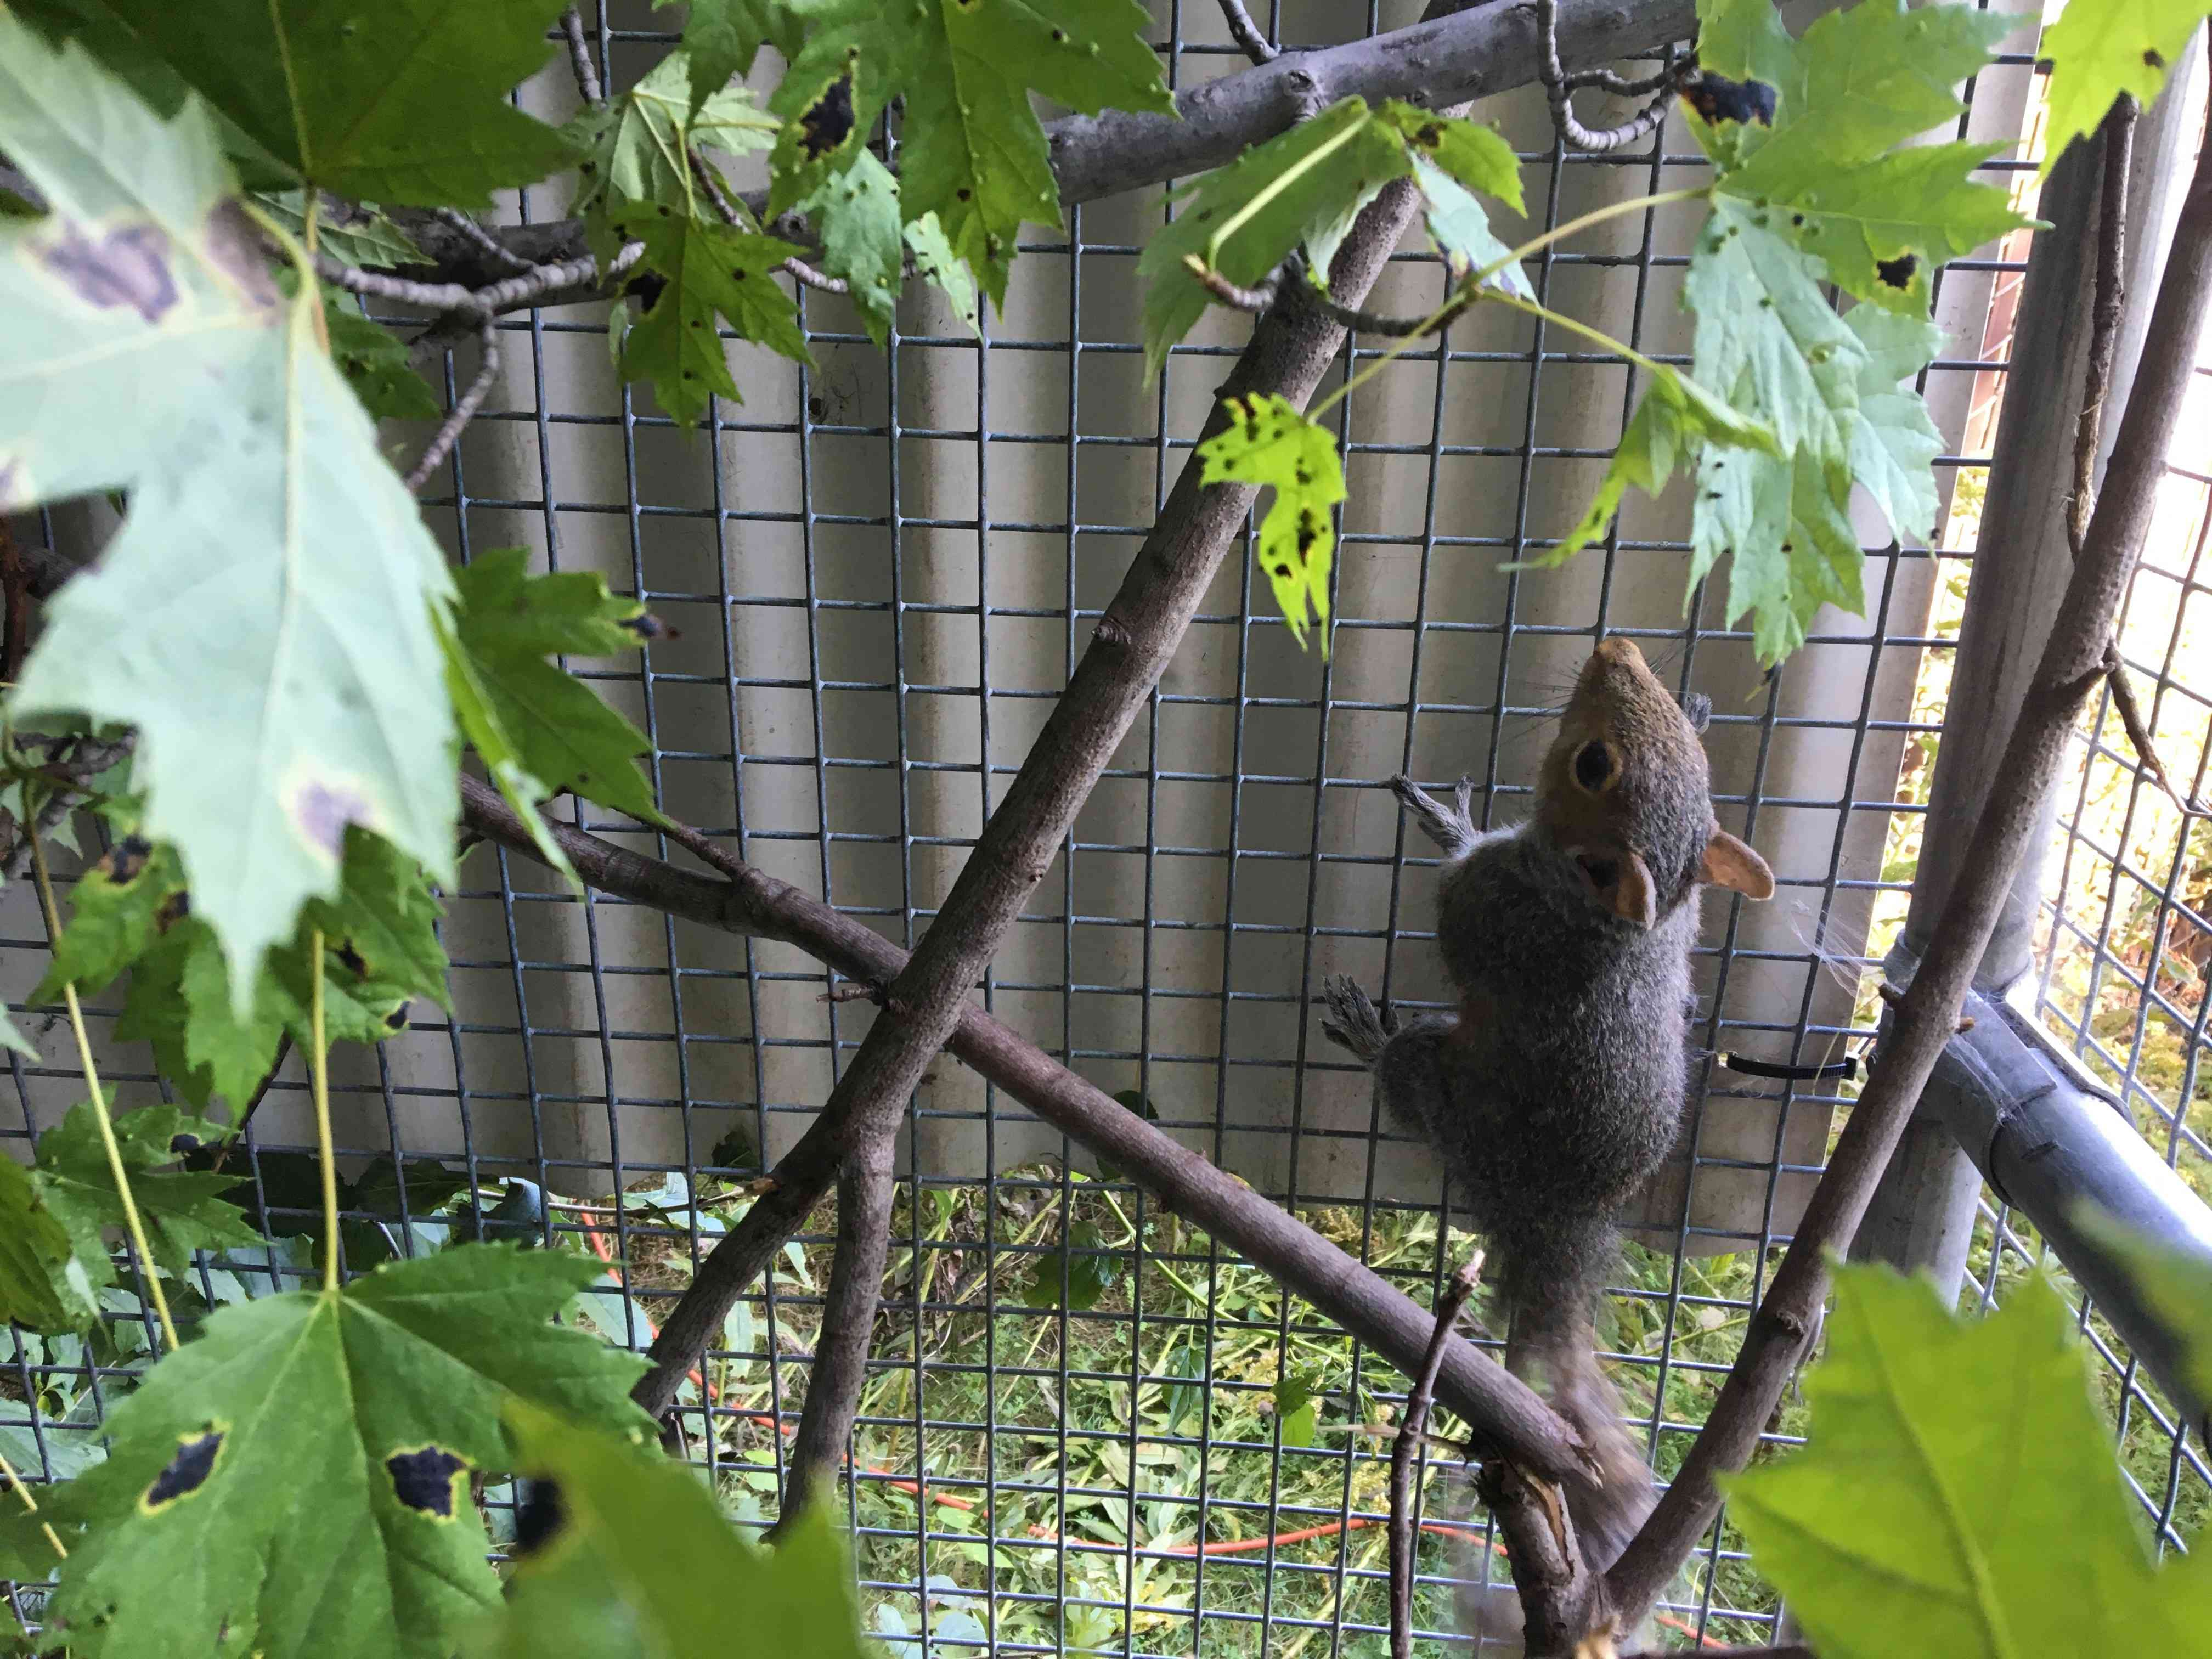 A squirrel recovering in a tree at a wildlife rehabilitation center